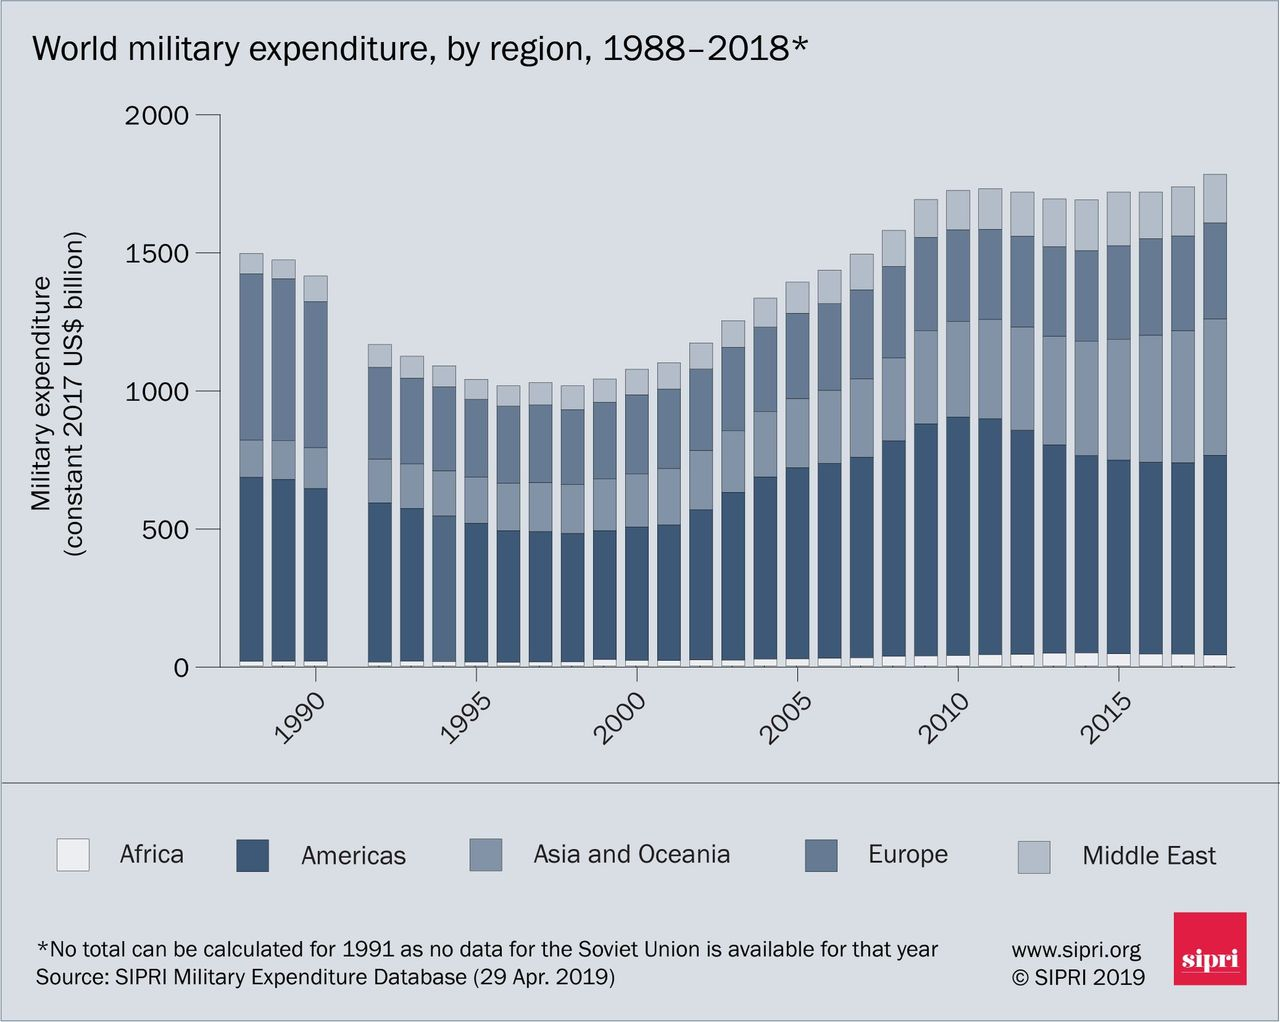 World military expenditure by region, 1988-2018